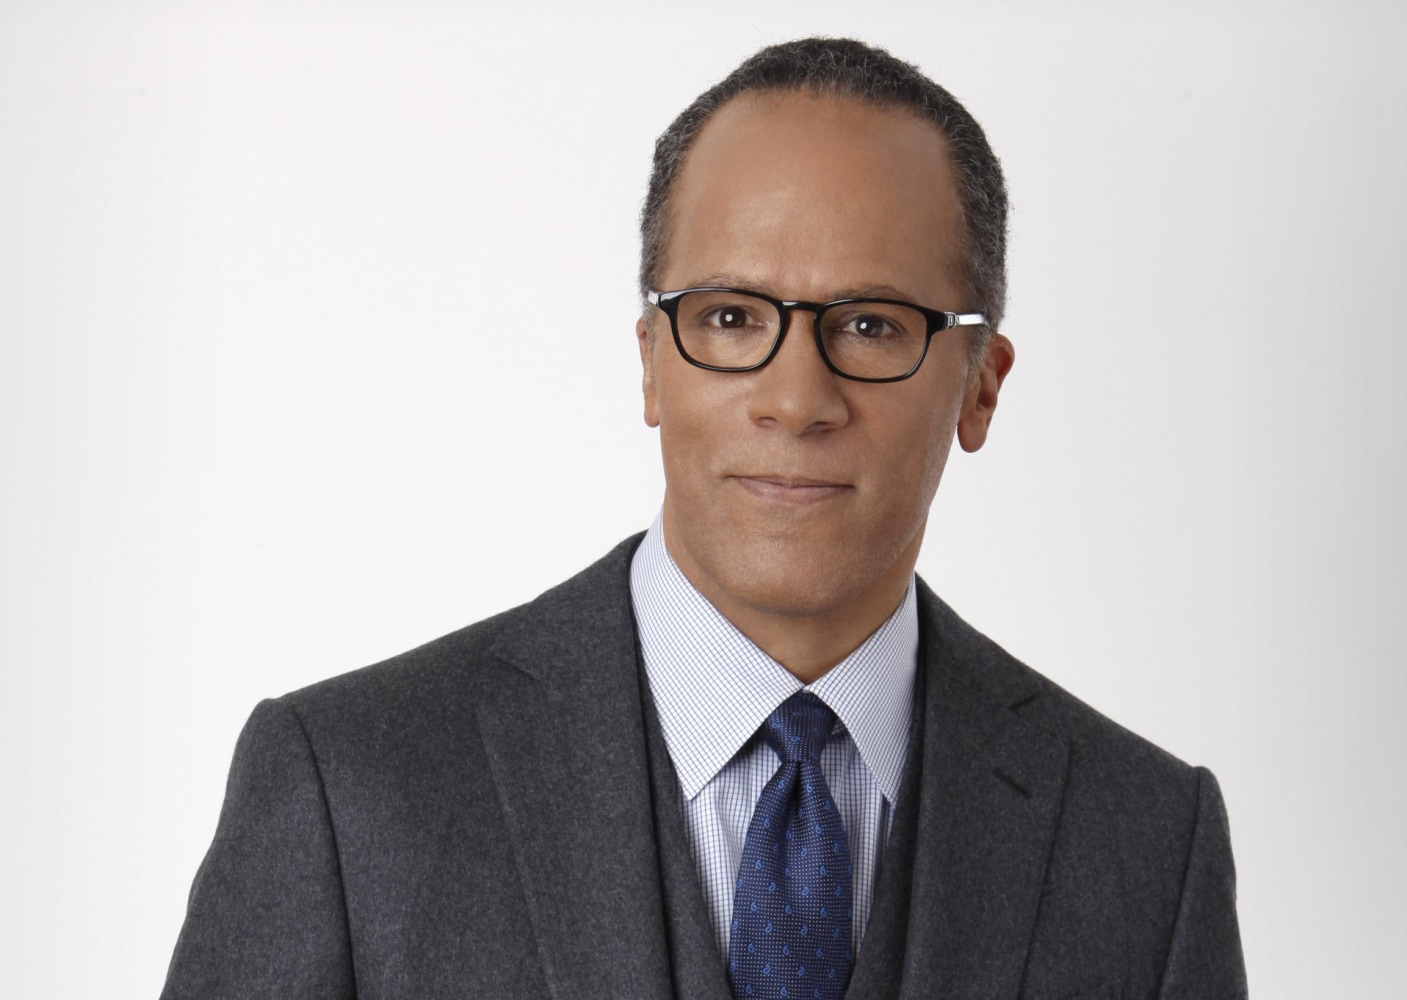 The 59-year old son of father (?) and mother(?) Lester Holt in 2018 photo. Lester Holt earned a  million dollar salary - leaving the net worth at 12 million in 2018